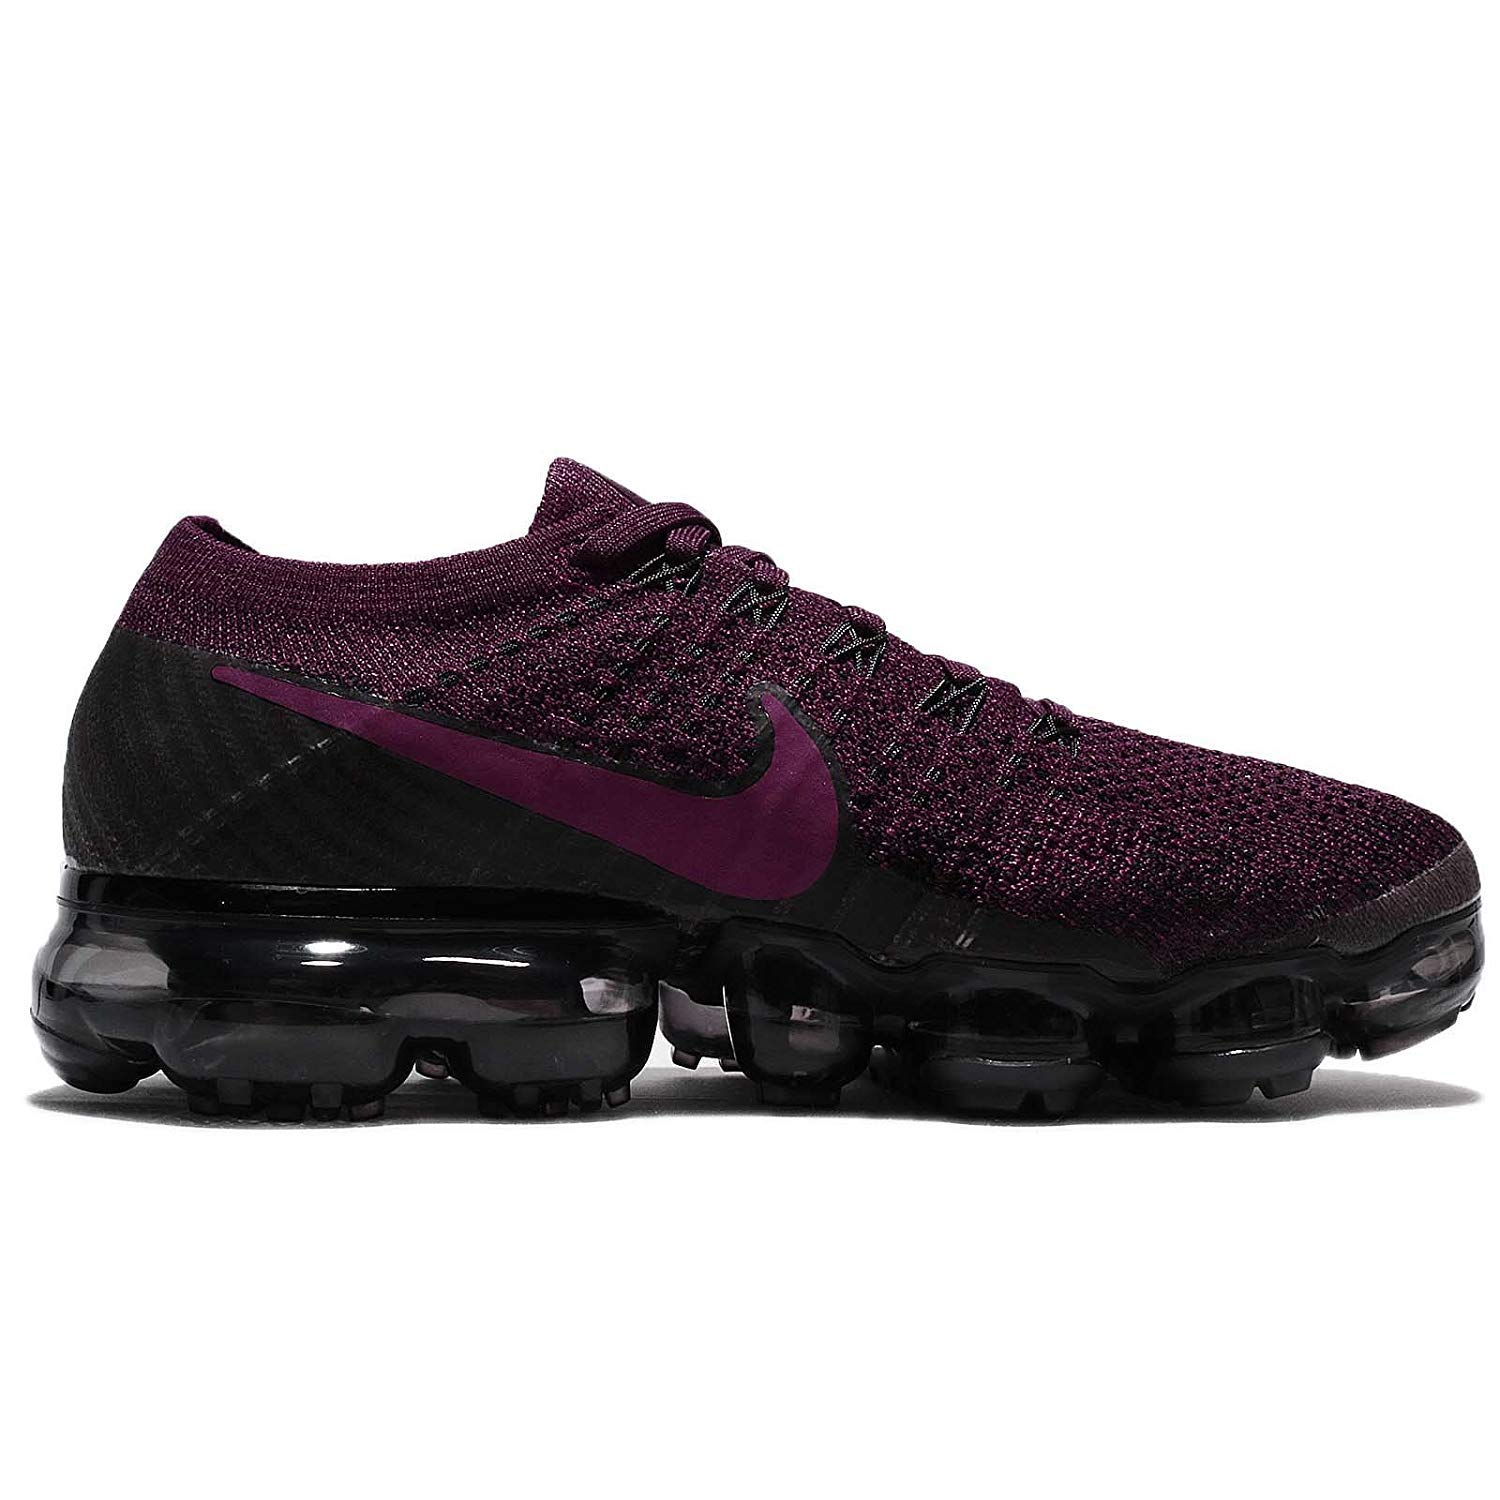 size 40 c38c9 73820 Amazon.com   NIKE Womens AIR Vapormax Flyknit Size 6.5 Bordeaux Berry Black    Road Running